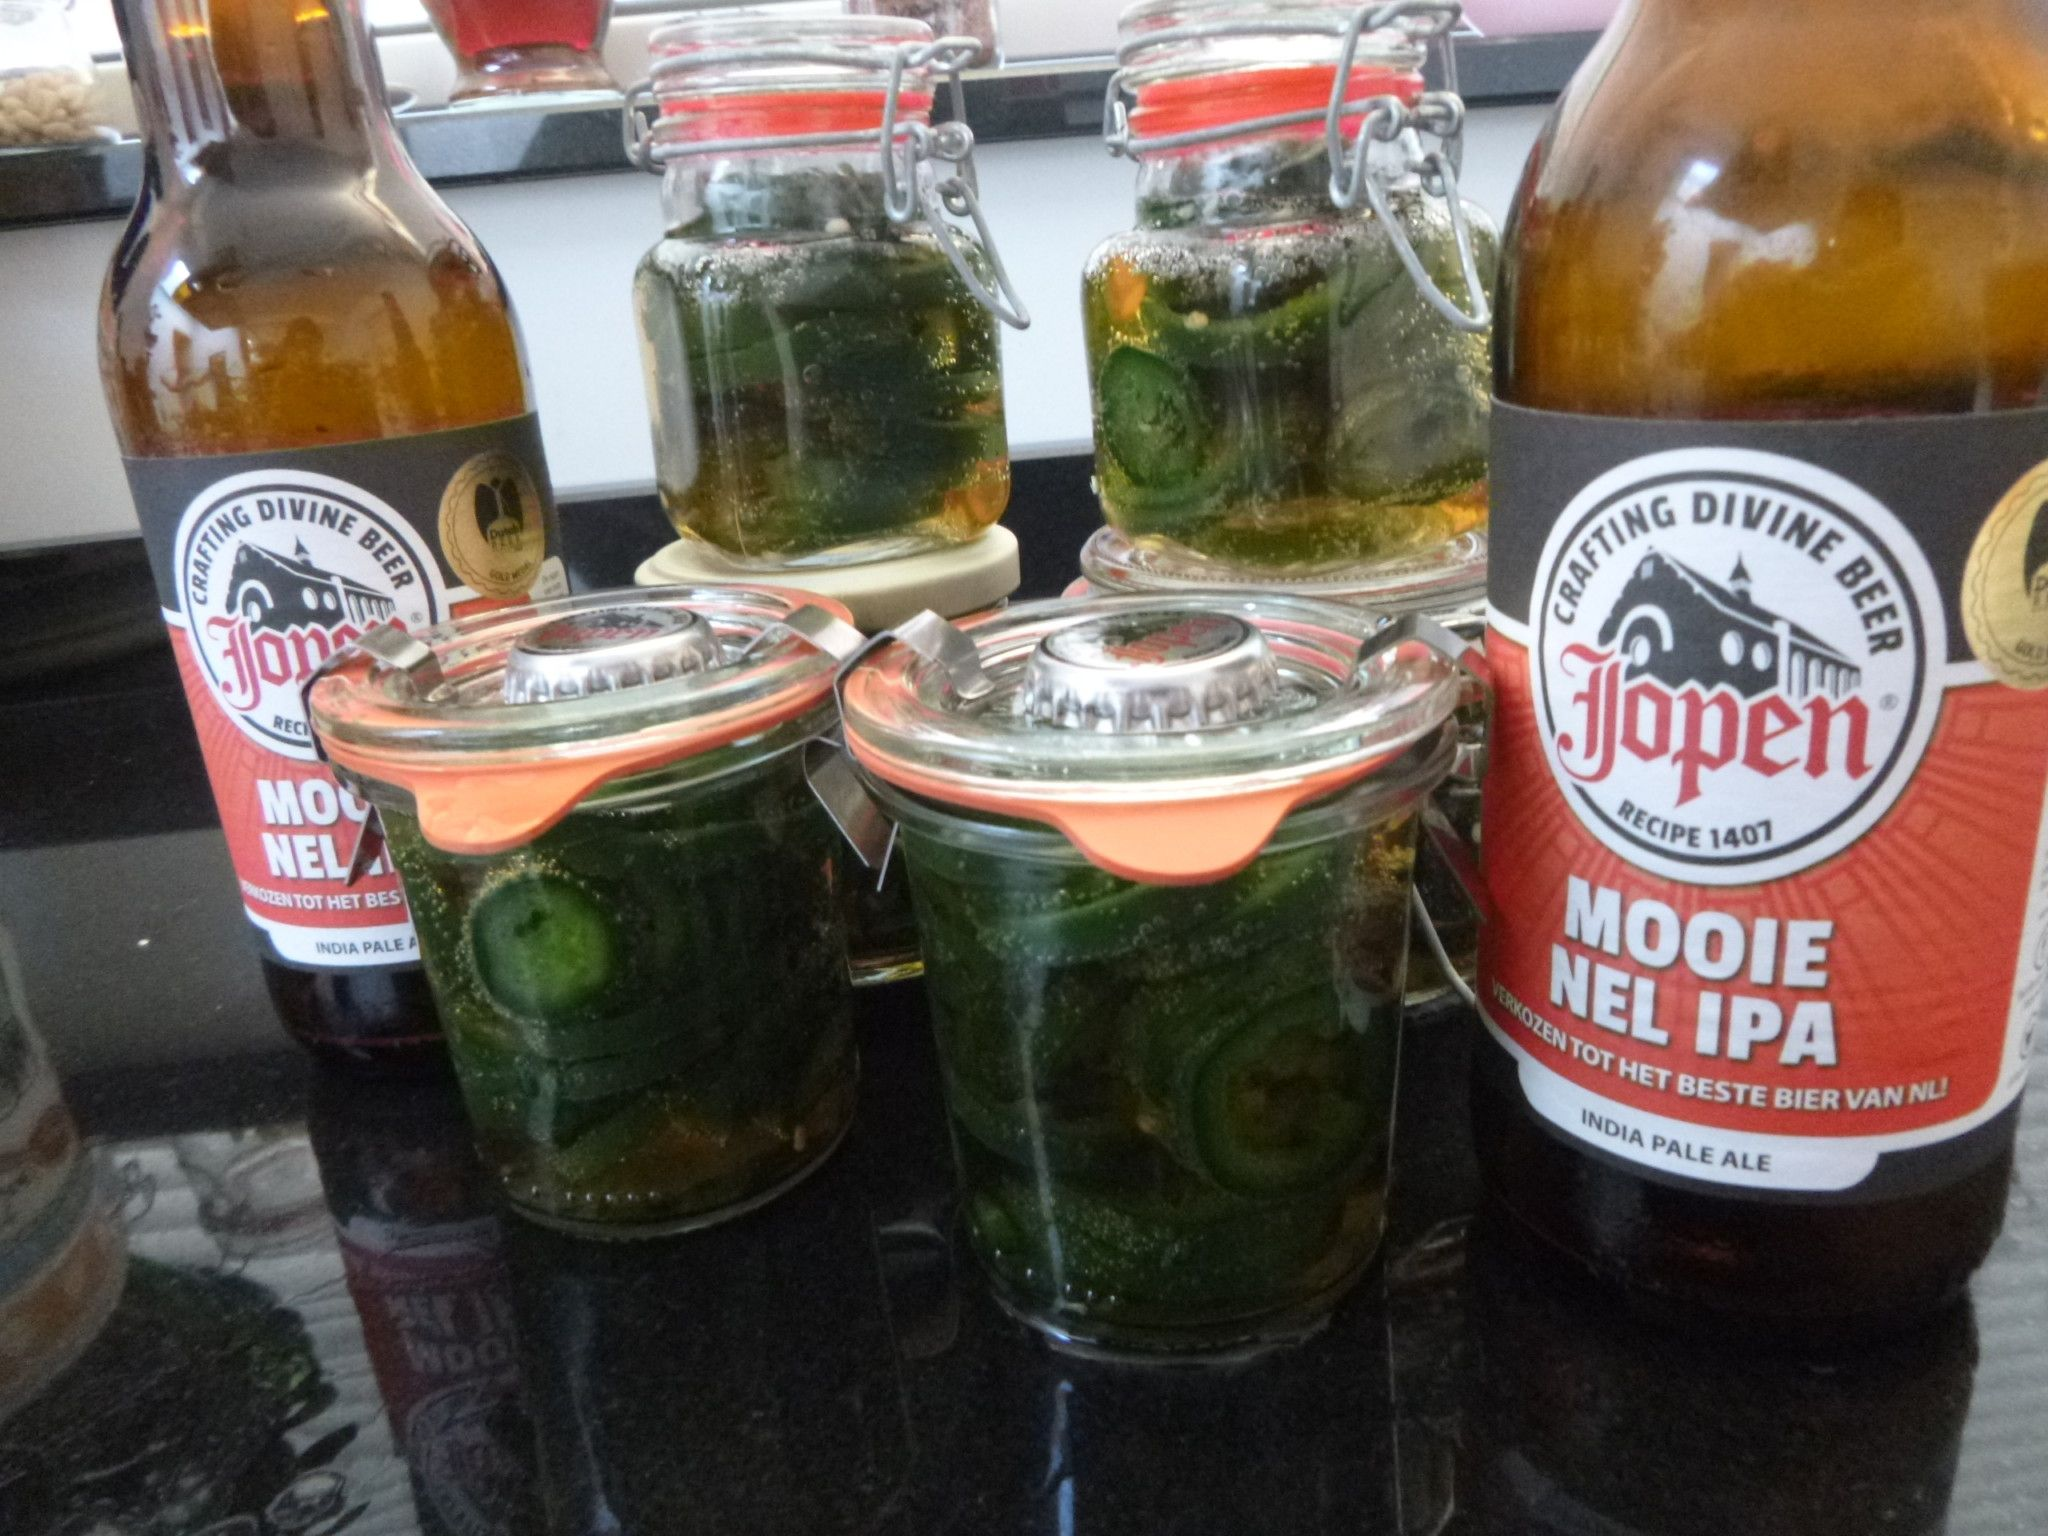 Jopen Mooie Nel IPA pickled Jalapeno pepers